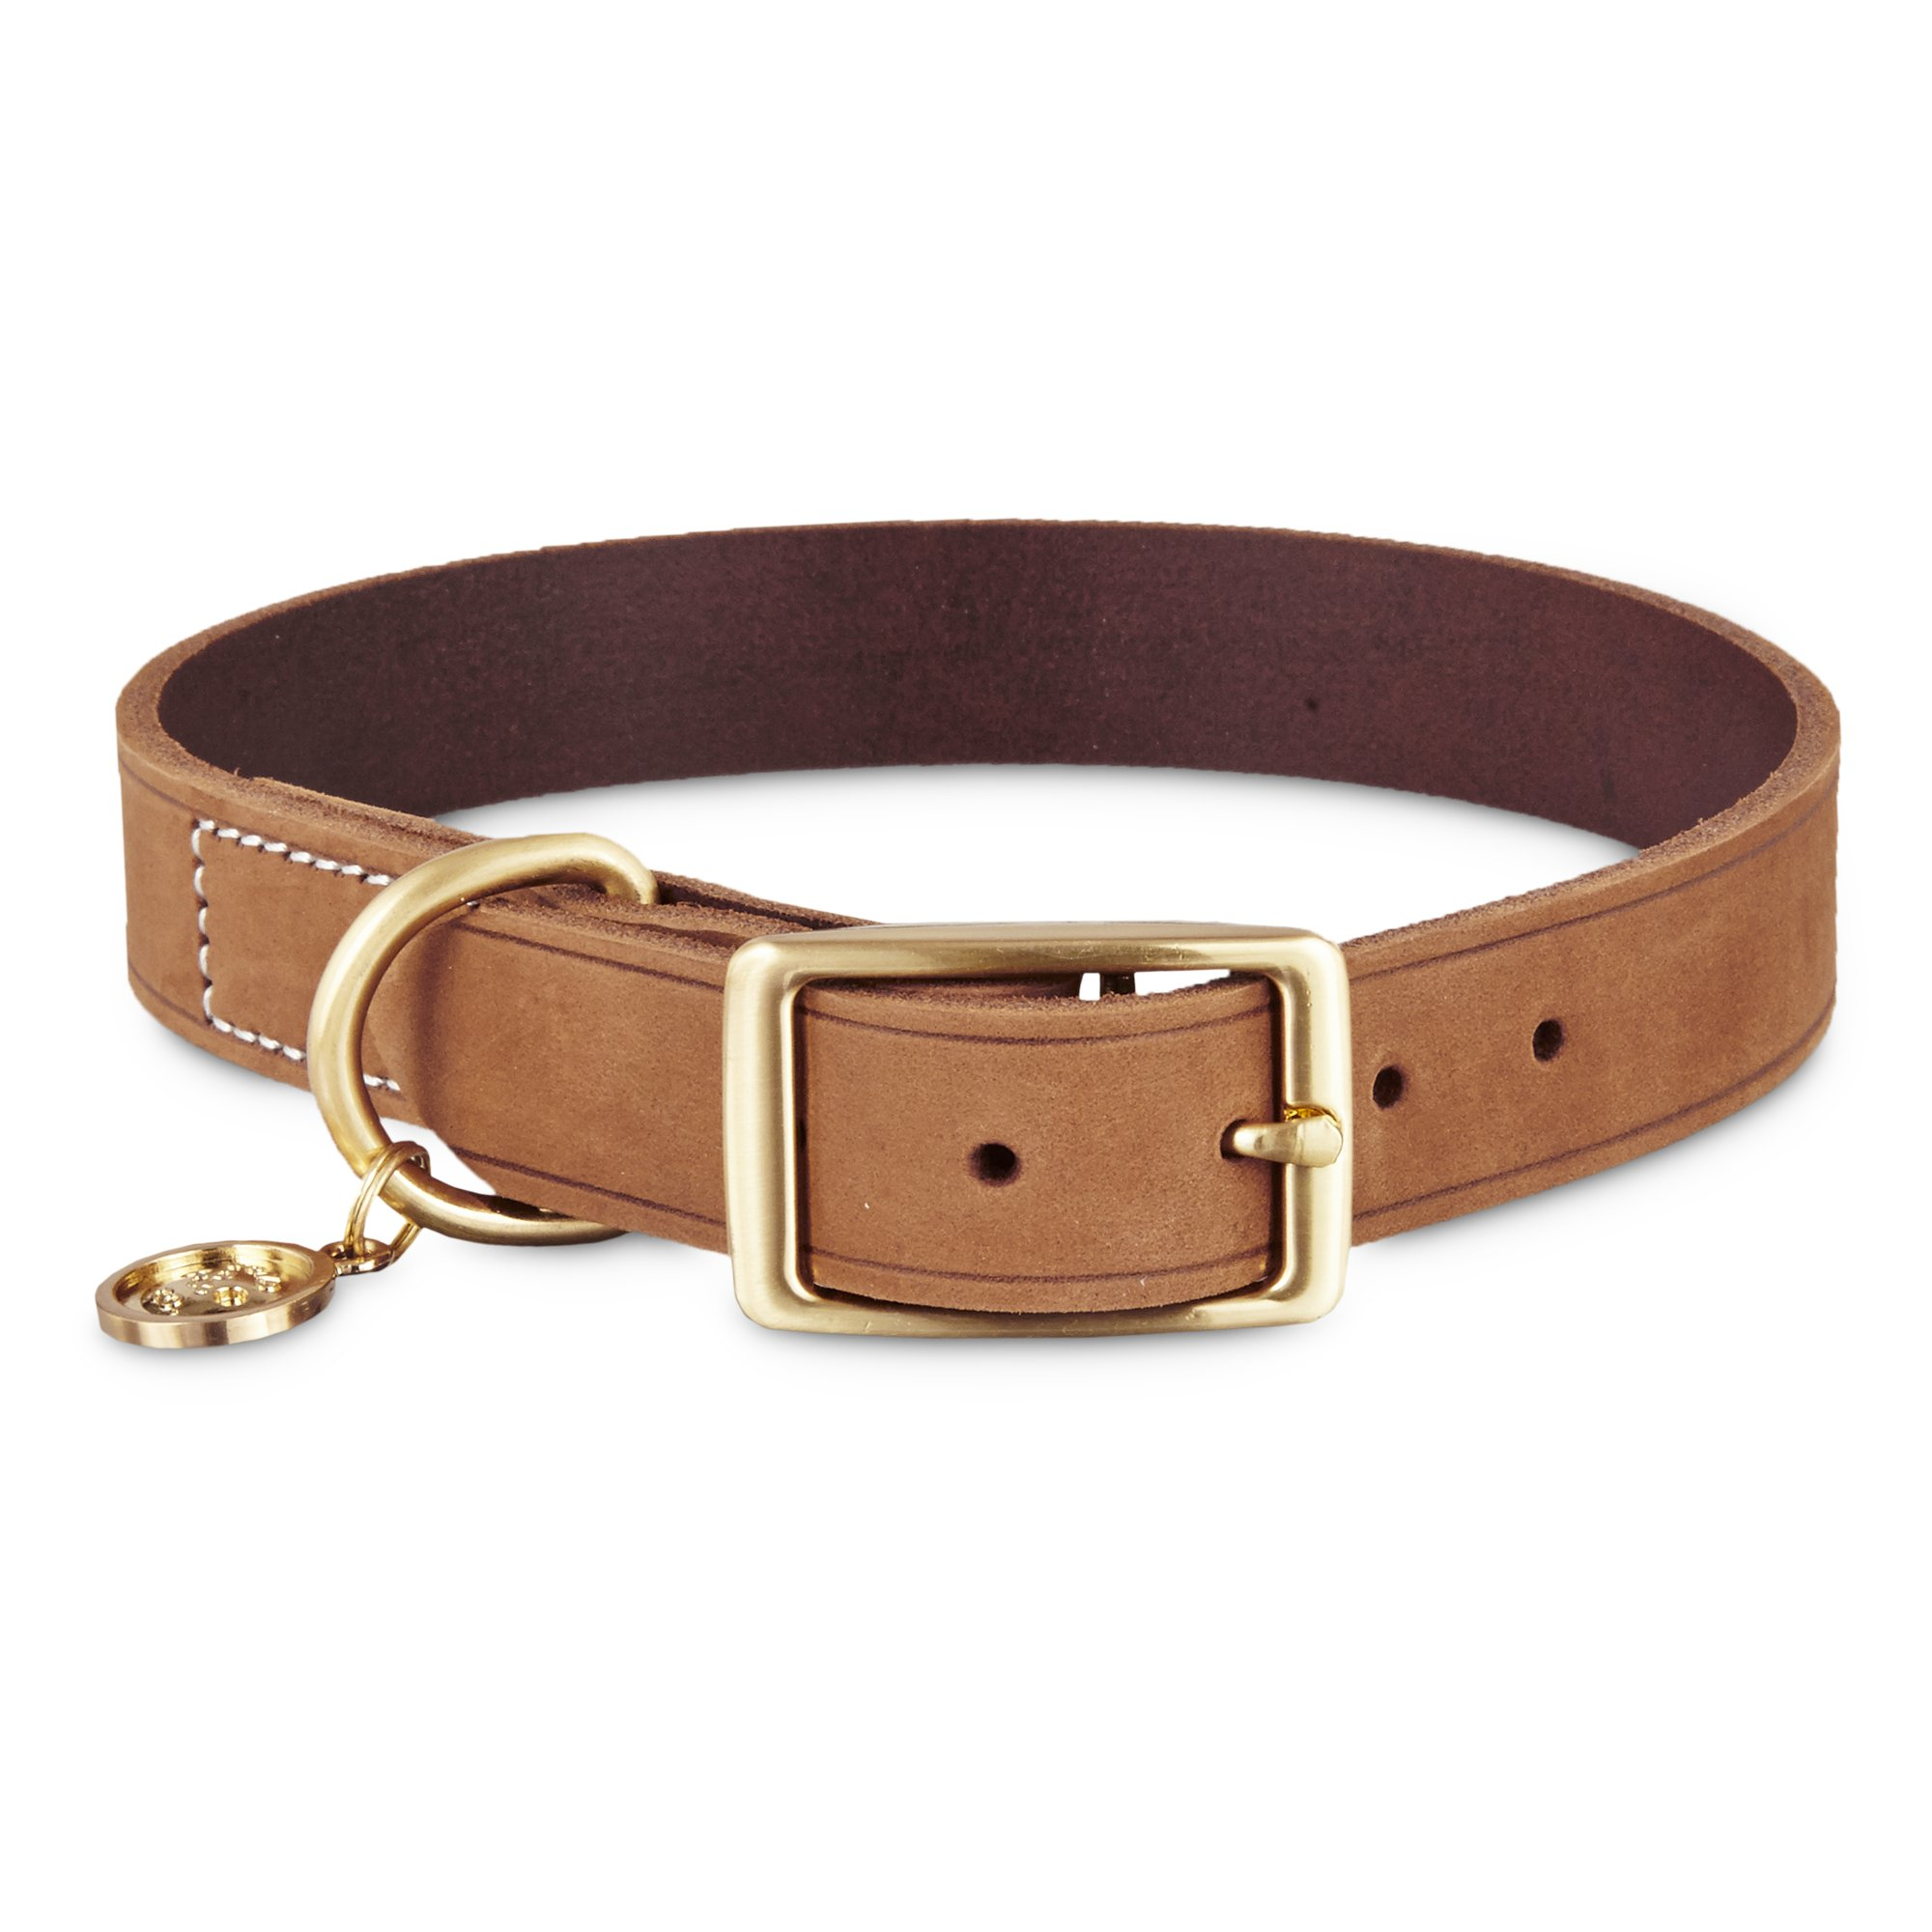 Bond Amp Co Copper Suede Dog Collar X Small Small Dog